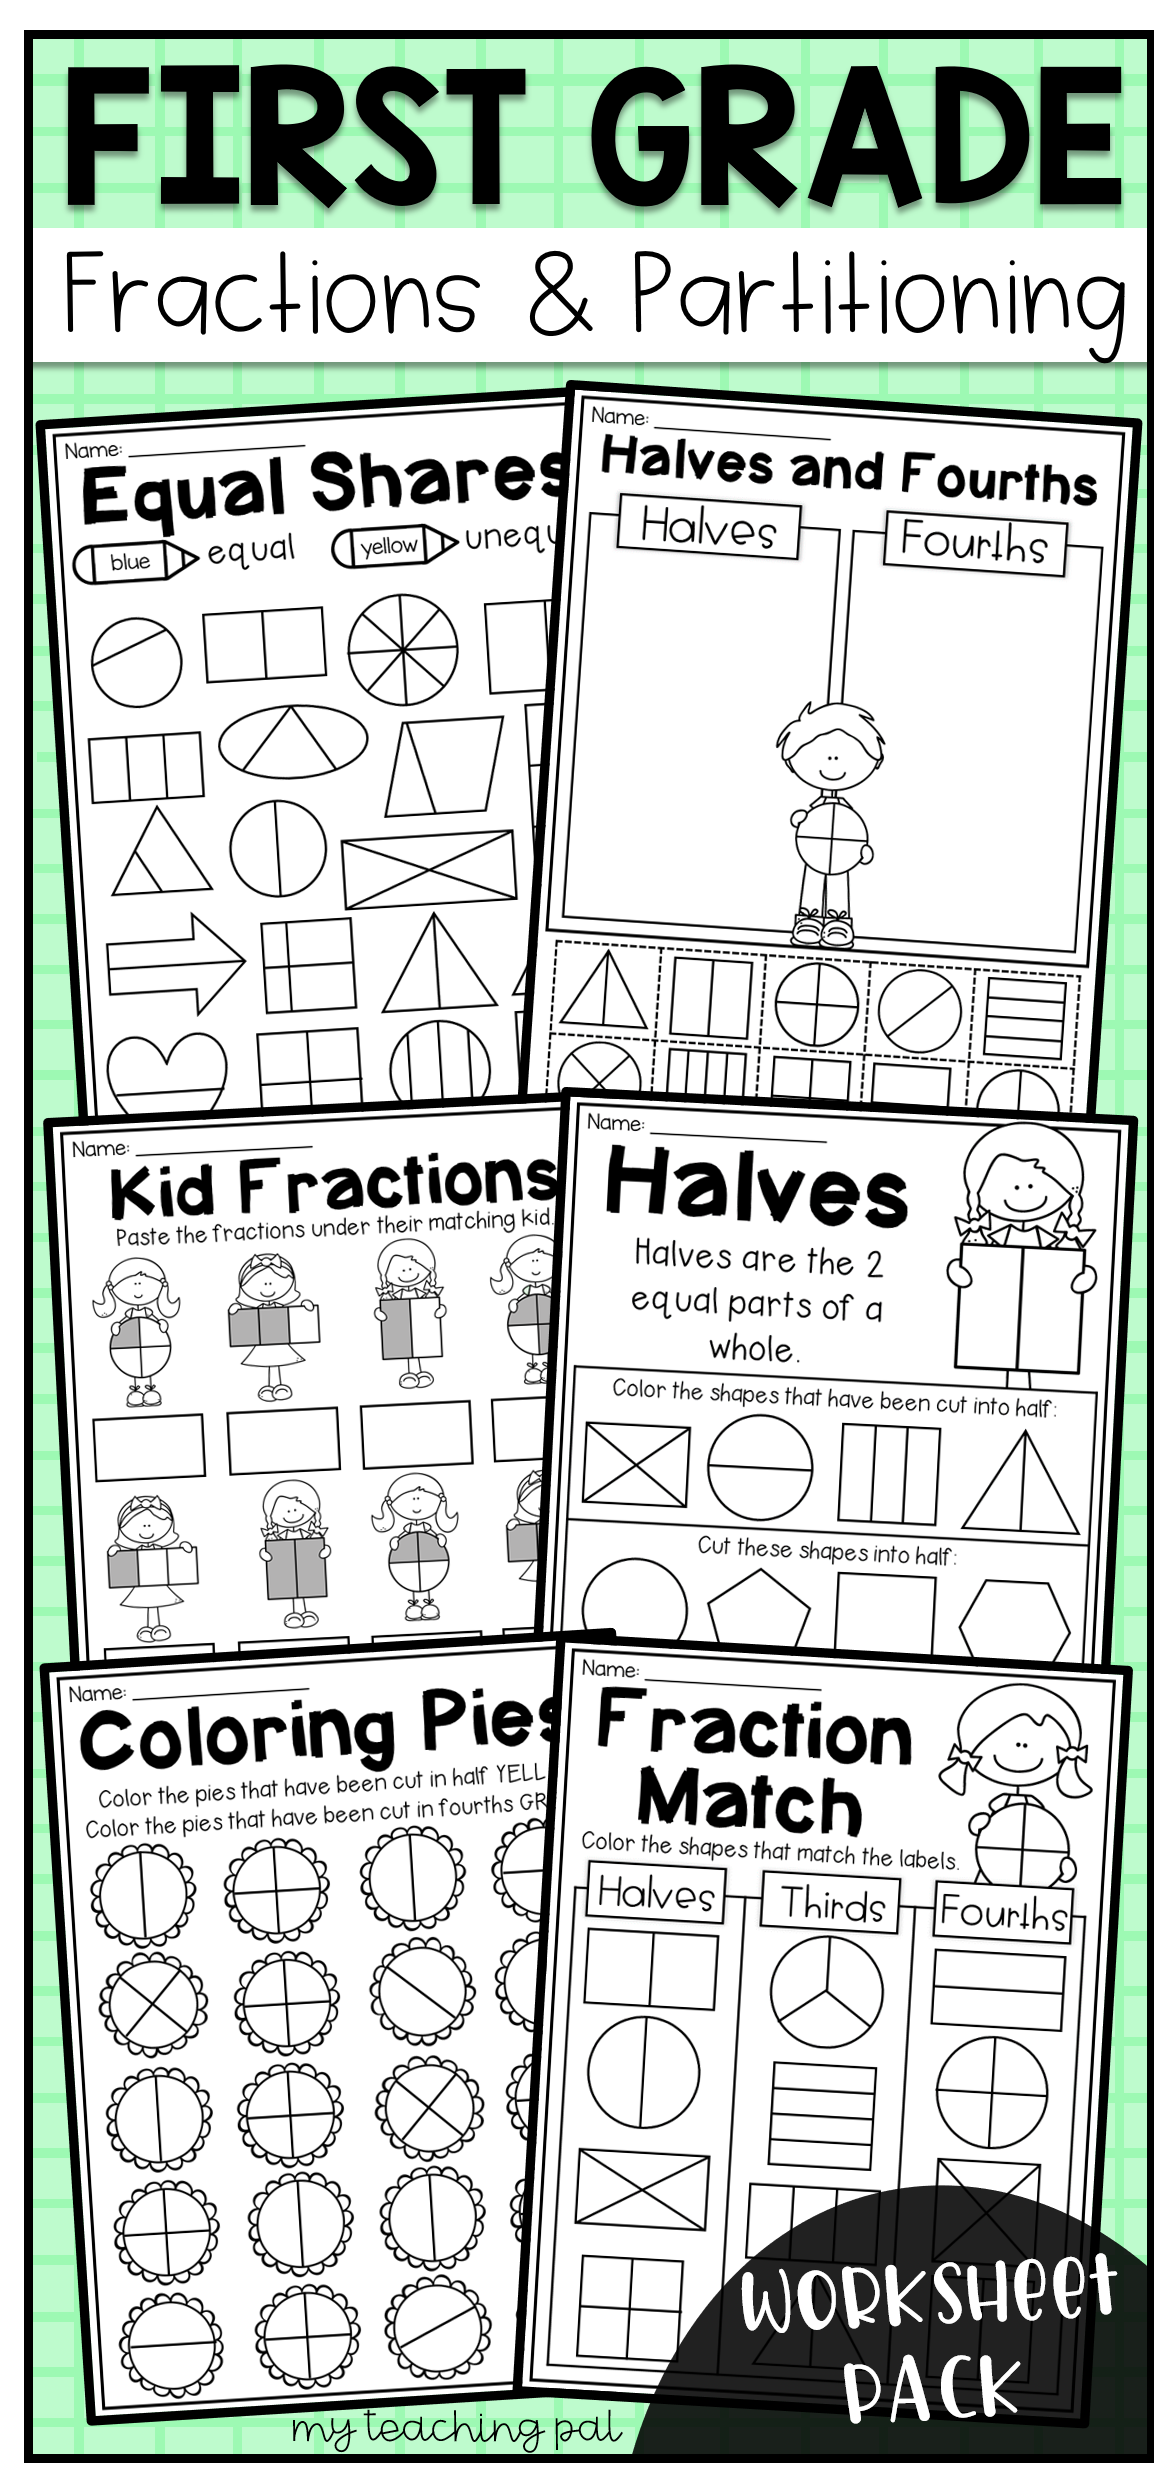 First Grade Fractions And Partitioning Worksheets Distance Learning First Grade Math Fractions Worksheets First Grade Worksheets